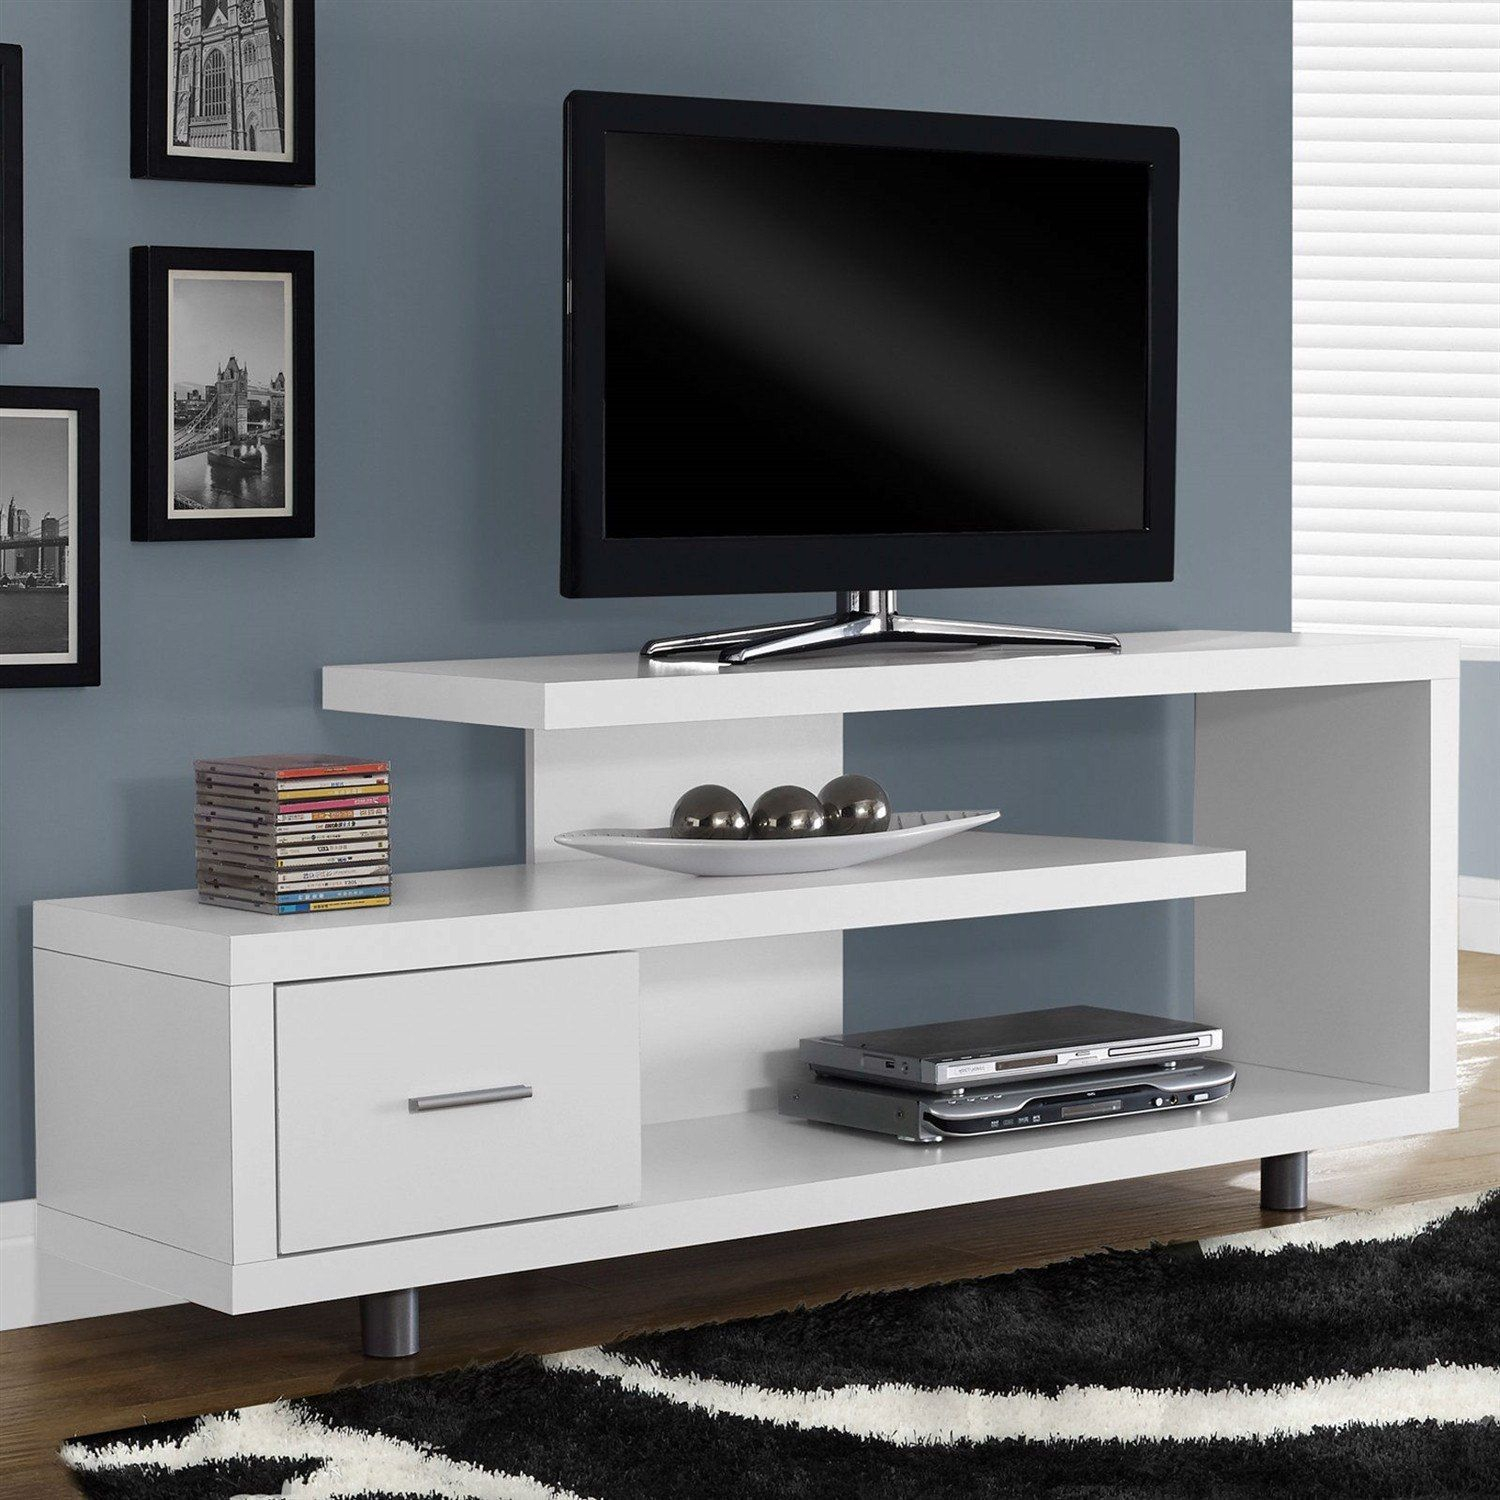 White Modern Tv Stand – Fits Up To 60 Inch Flat Screen Tv | Home With Laurent 60 Inch Tv Stands (View 2 of 30)